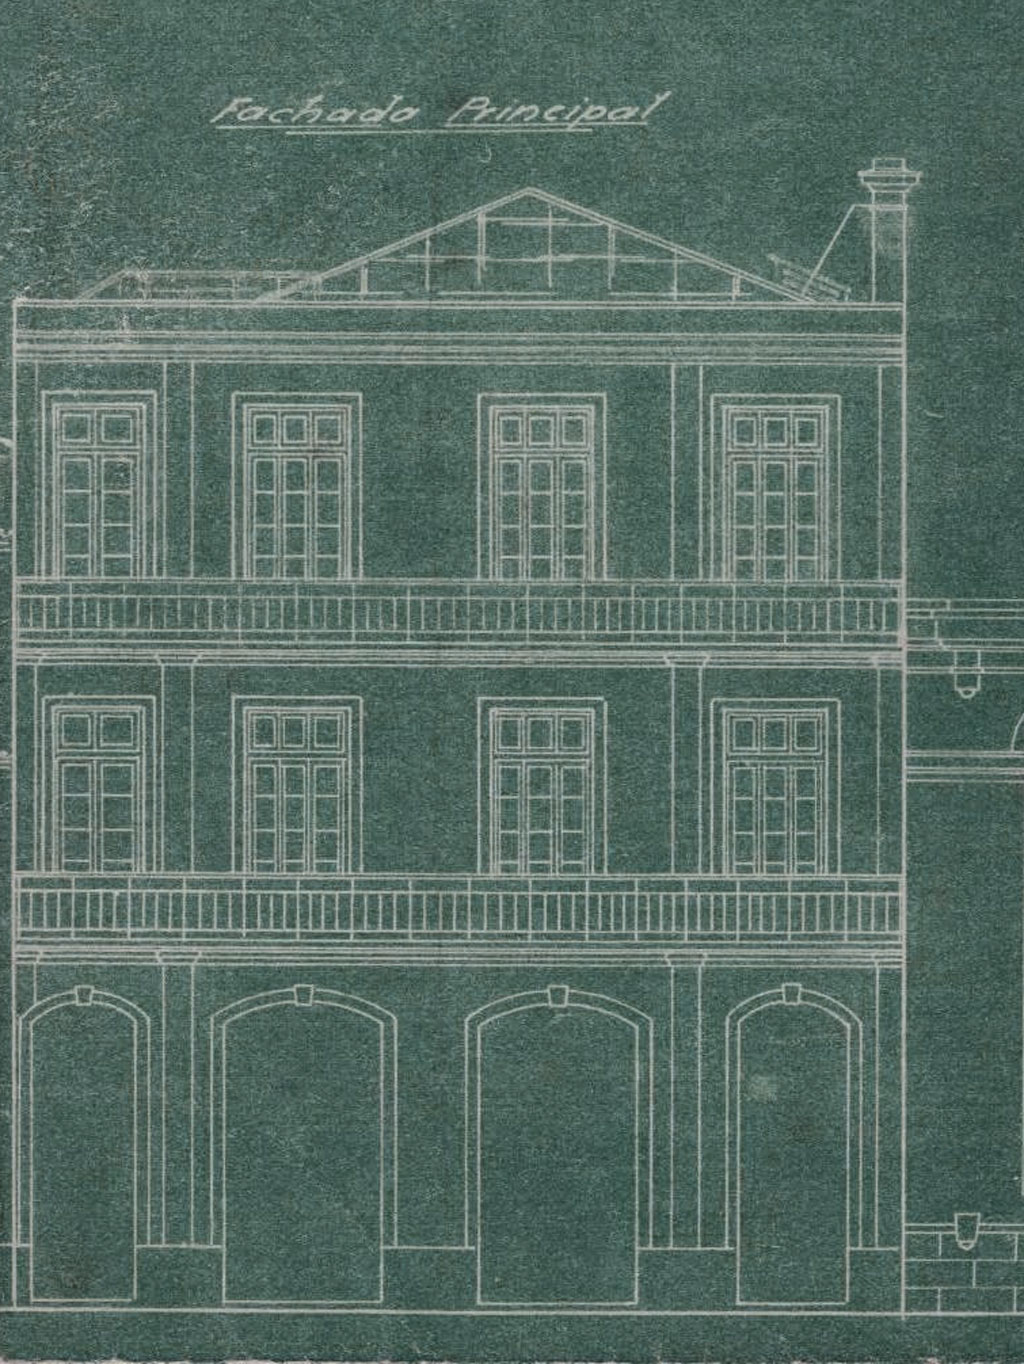 Plan of the main facade of the restaurant